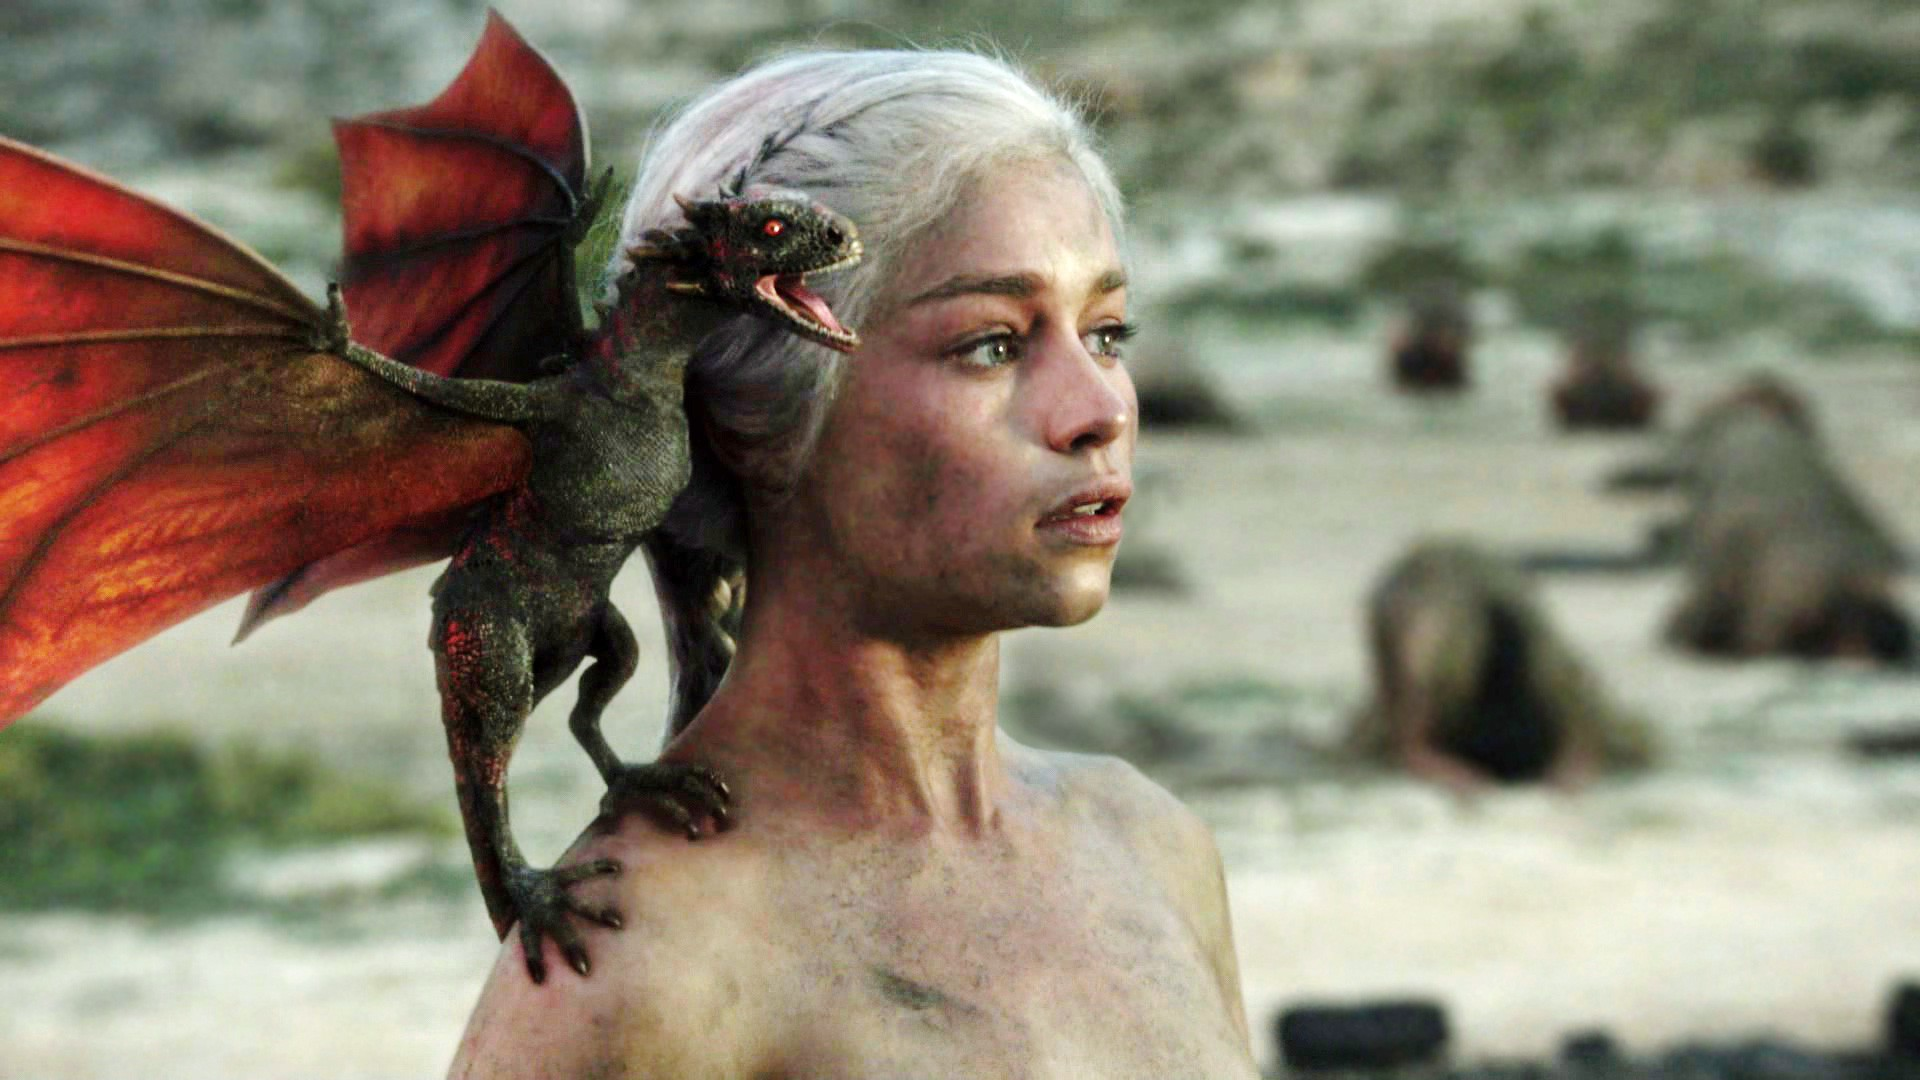 daenerys_targaryen_and_dragon-game_of_thrones_10_powerful_women_from_movies_and_tv_series_fabulous-muses